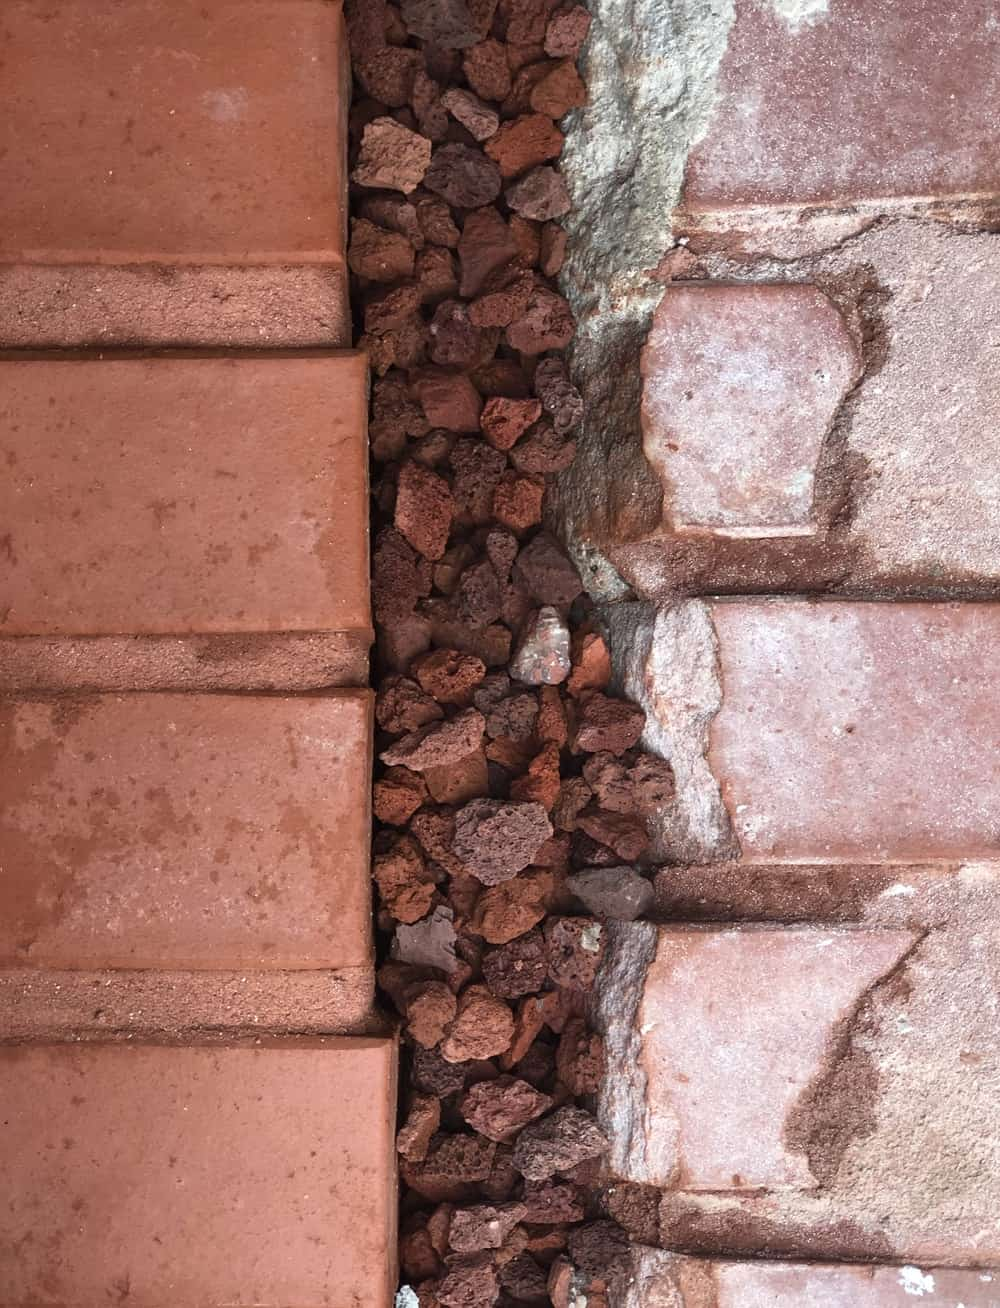 This is a close look at the red brick walls and gravel of the house exterior giving it a layered look.